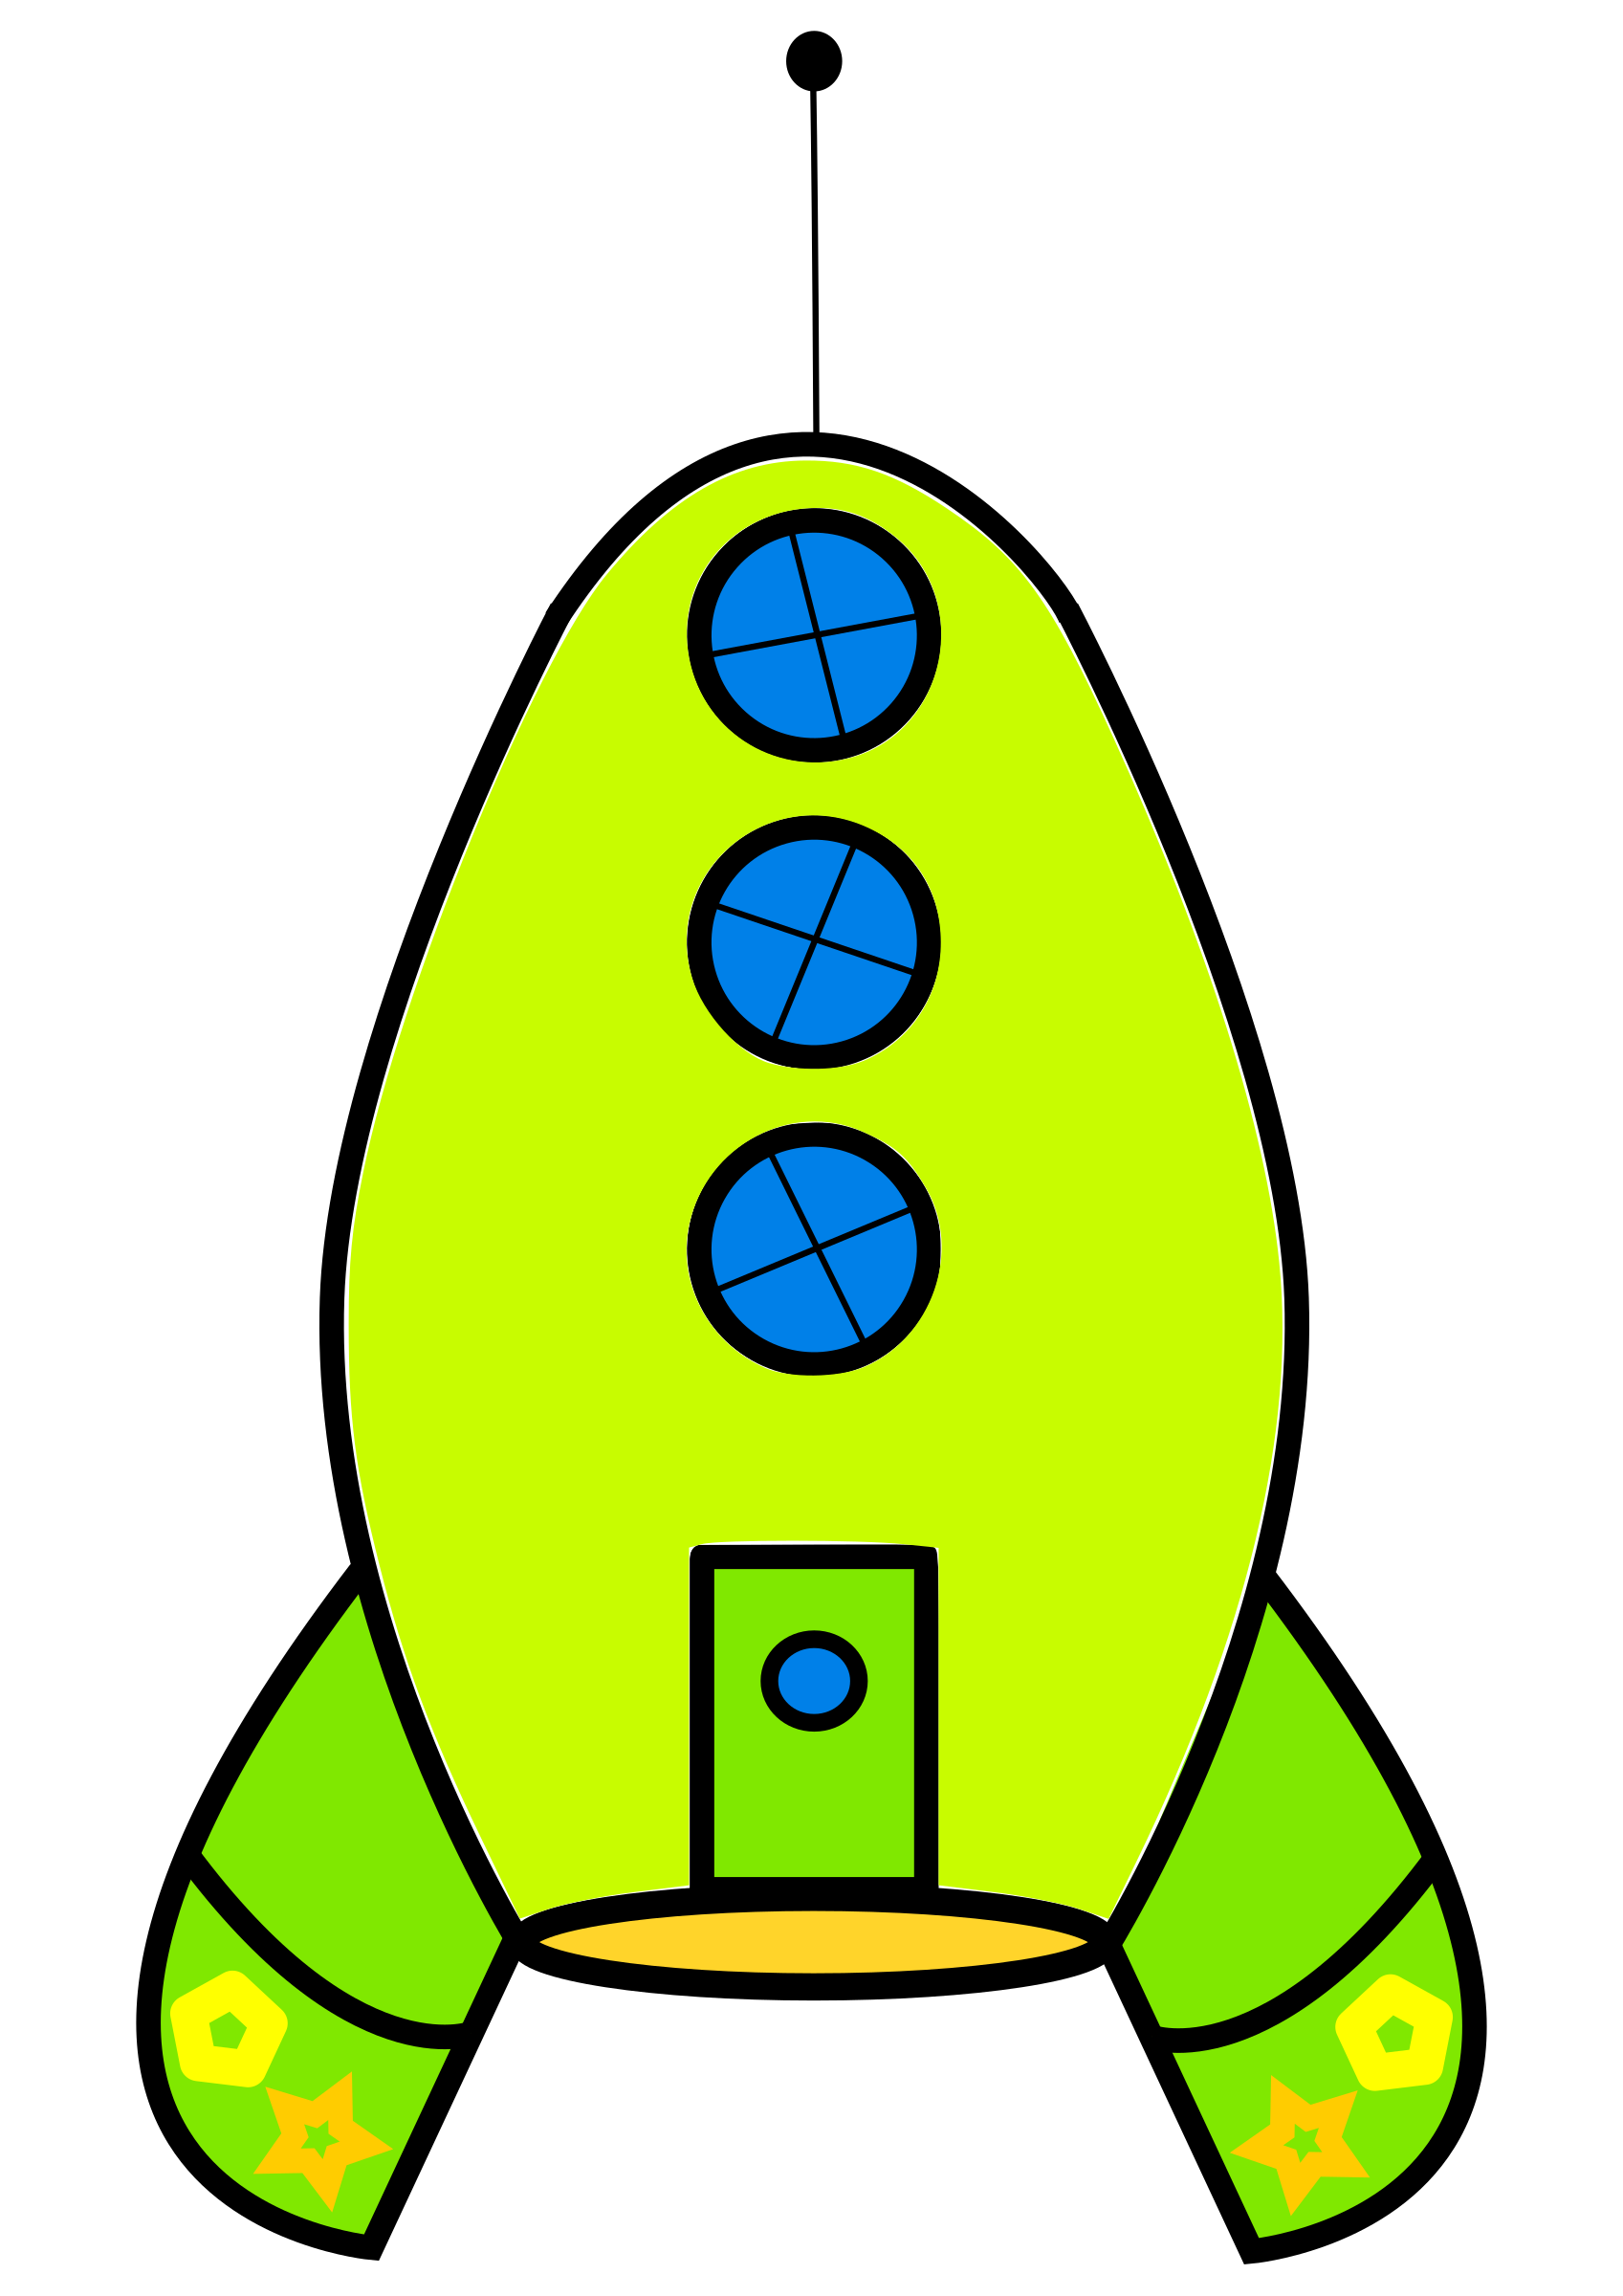 Clipart rocket yellow rocket. Green big image png